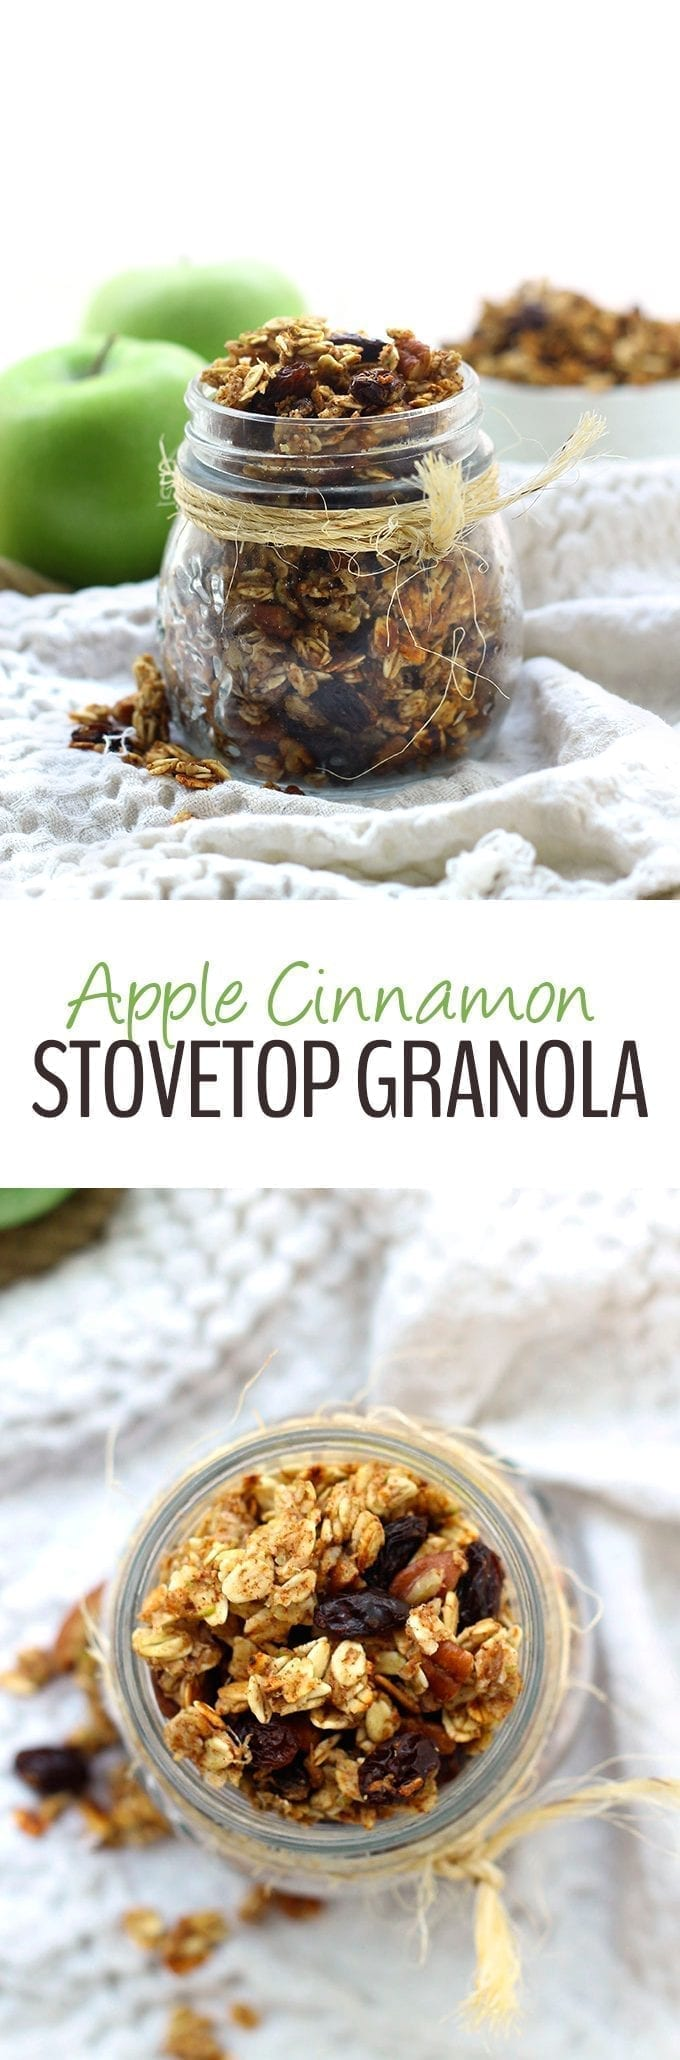 A hearty and healthy apple cinnamon stovetop granola recipe that's ready in 15 minutes or less! Perfect for an easy morning breakfast.